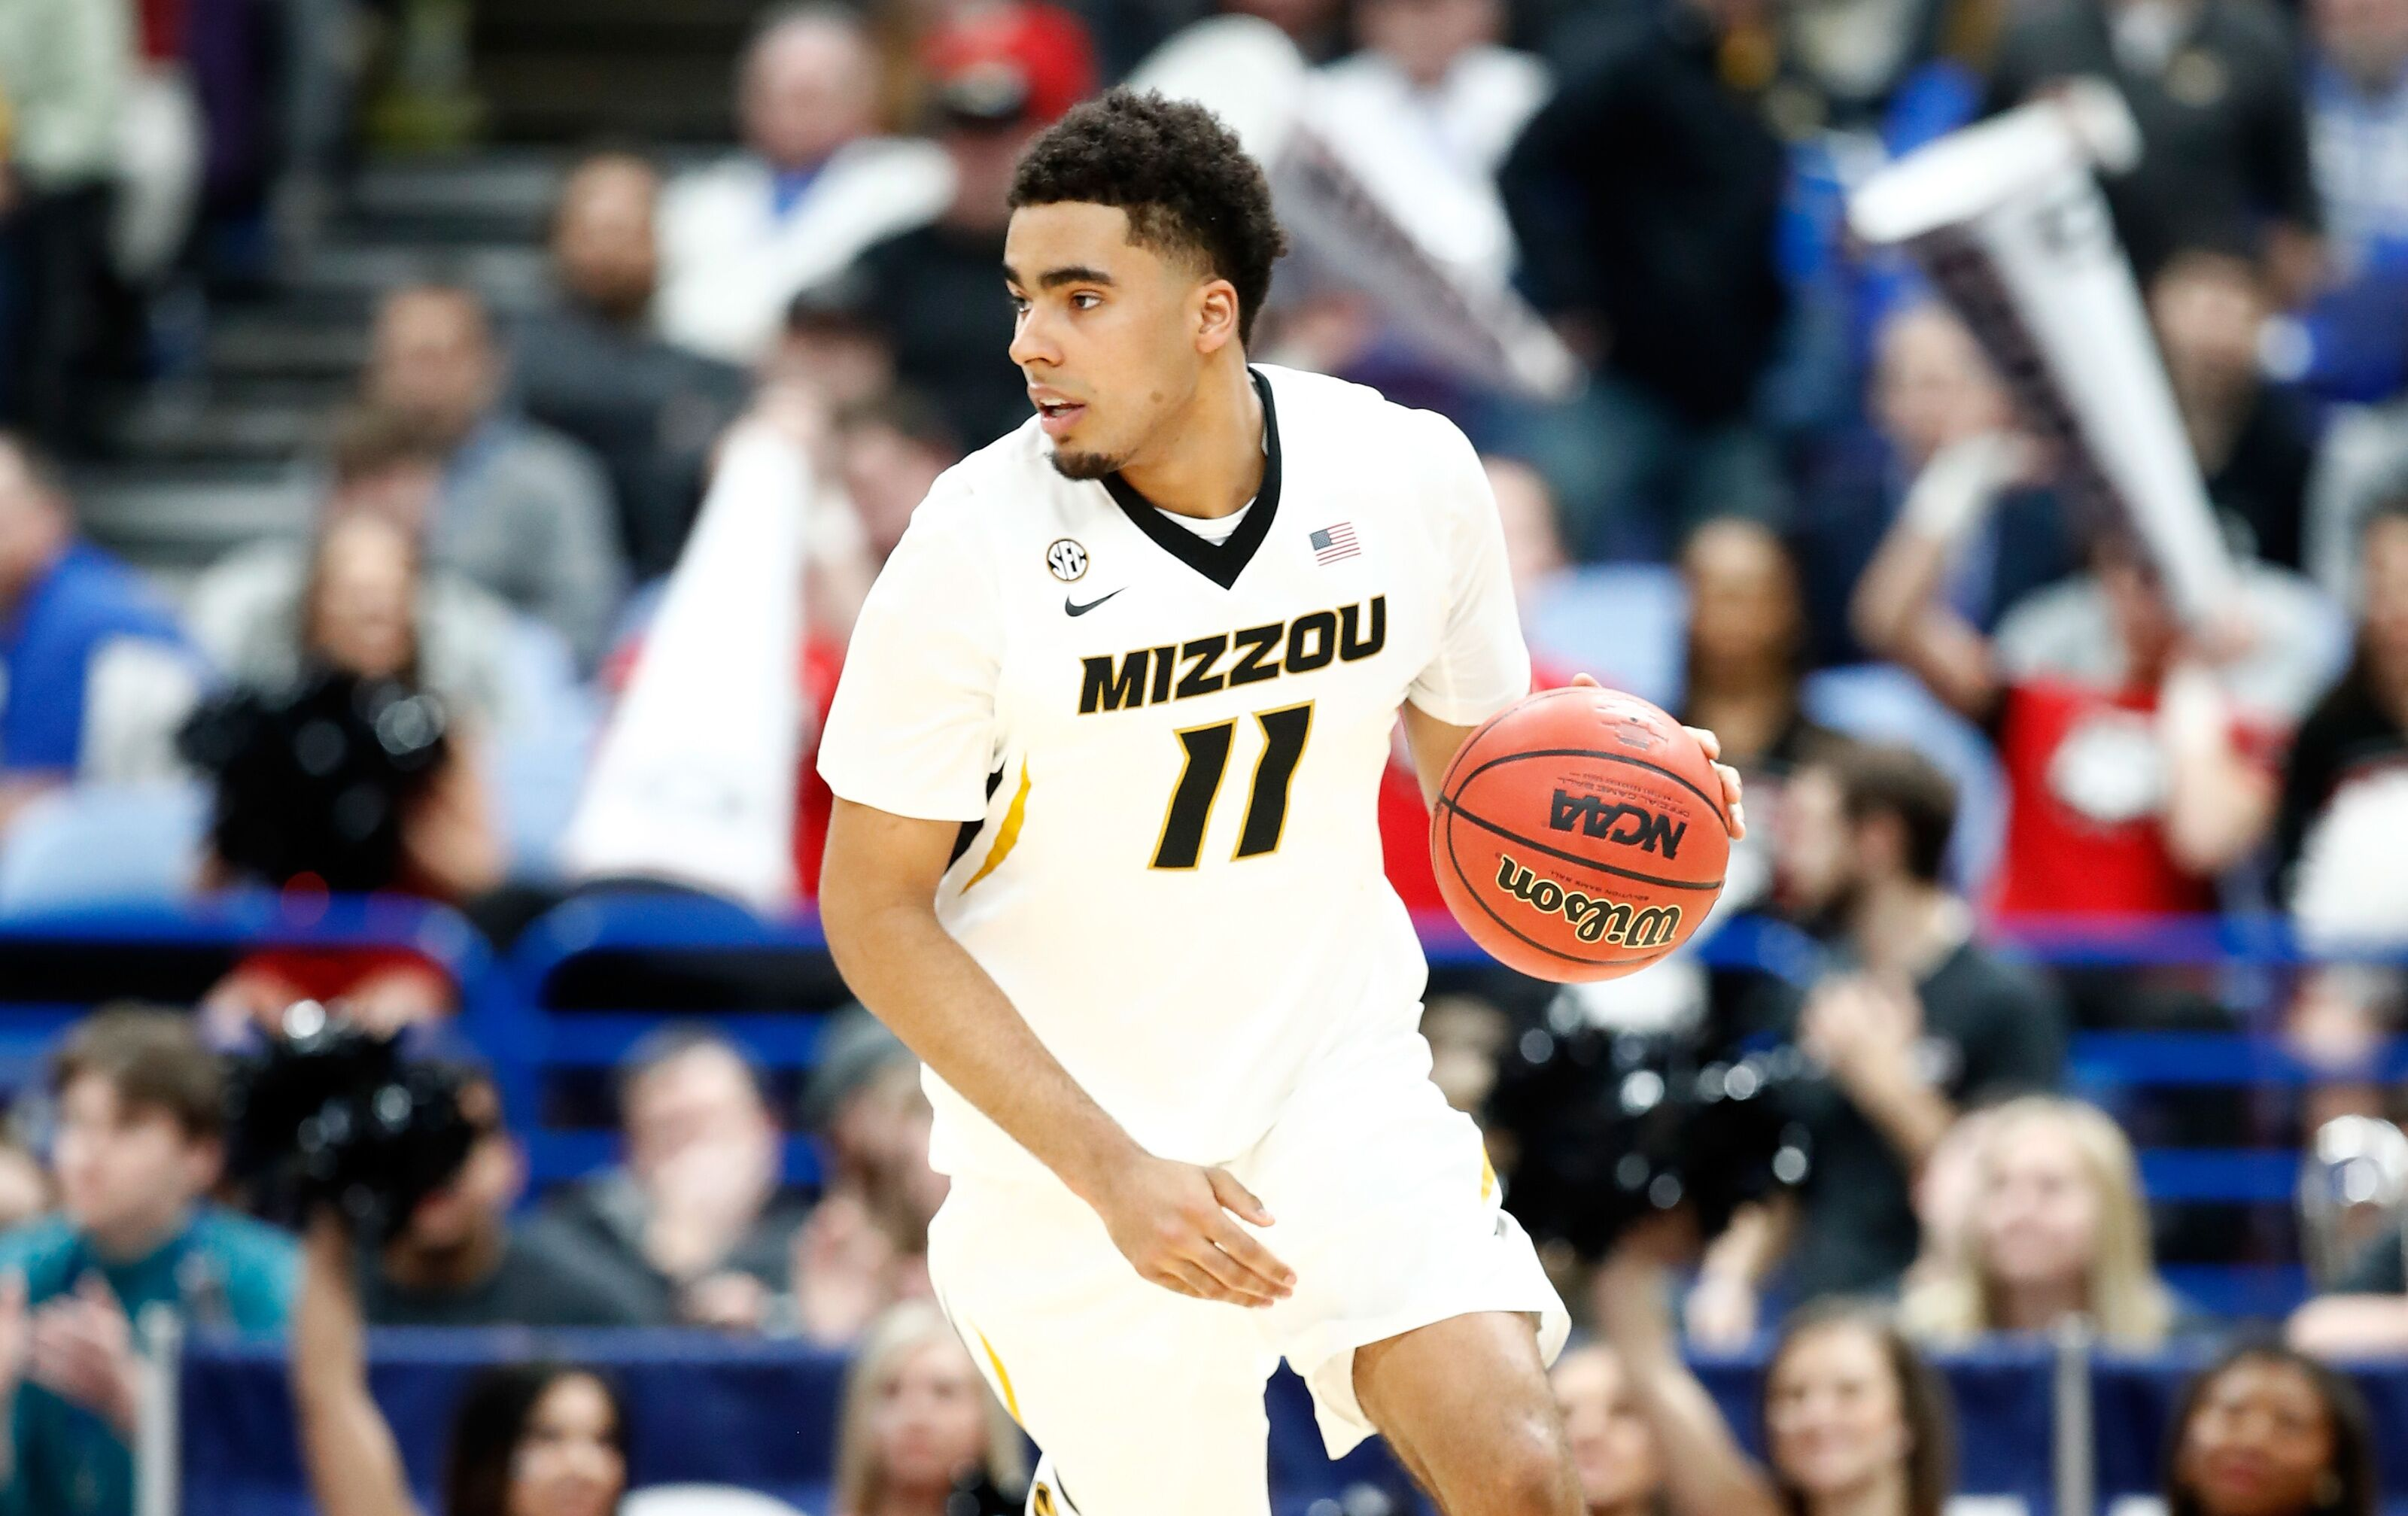 NBA Draft 2019: 3 major sleeper prospects with top 10 talent